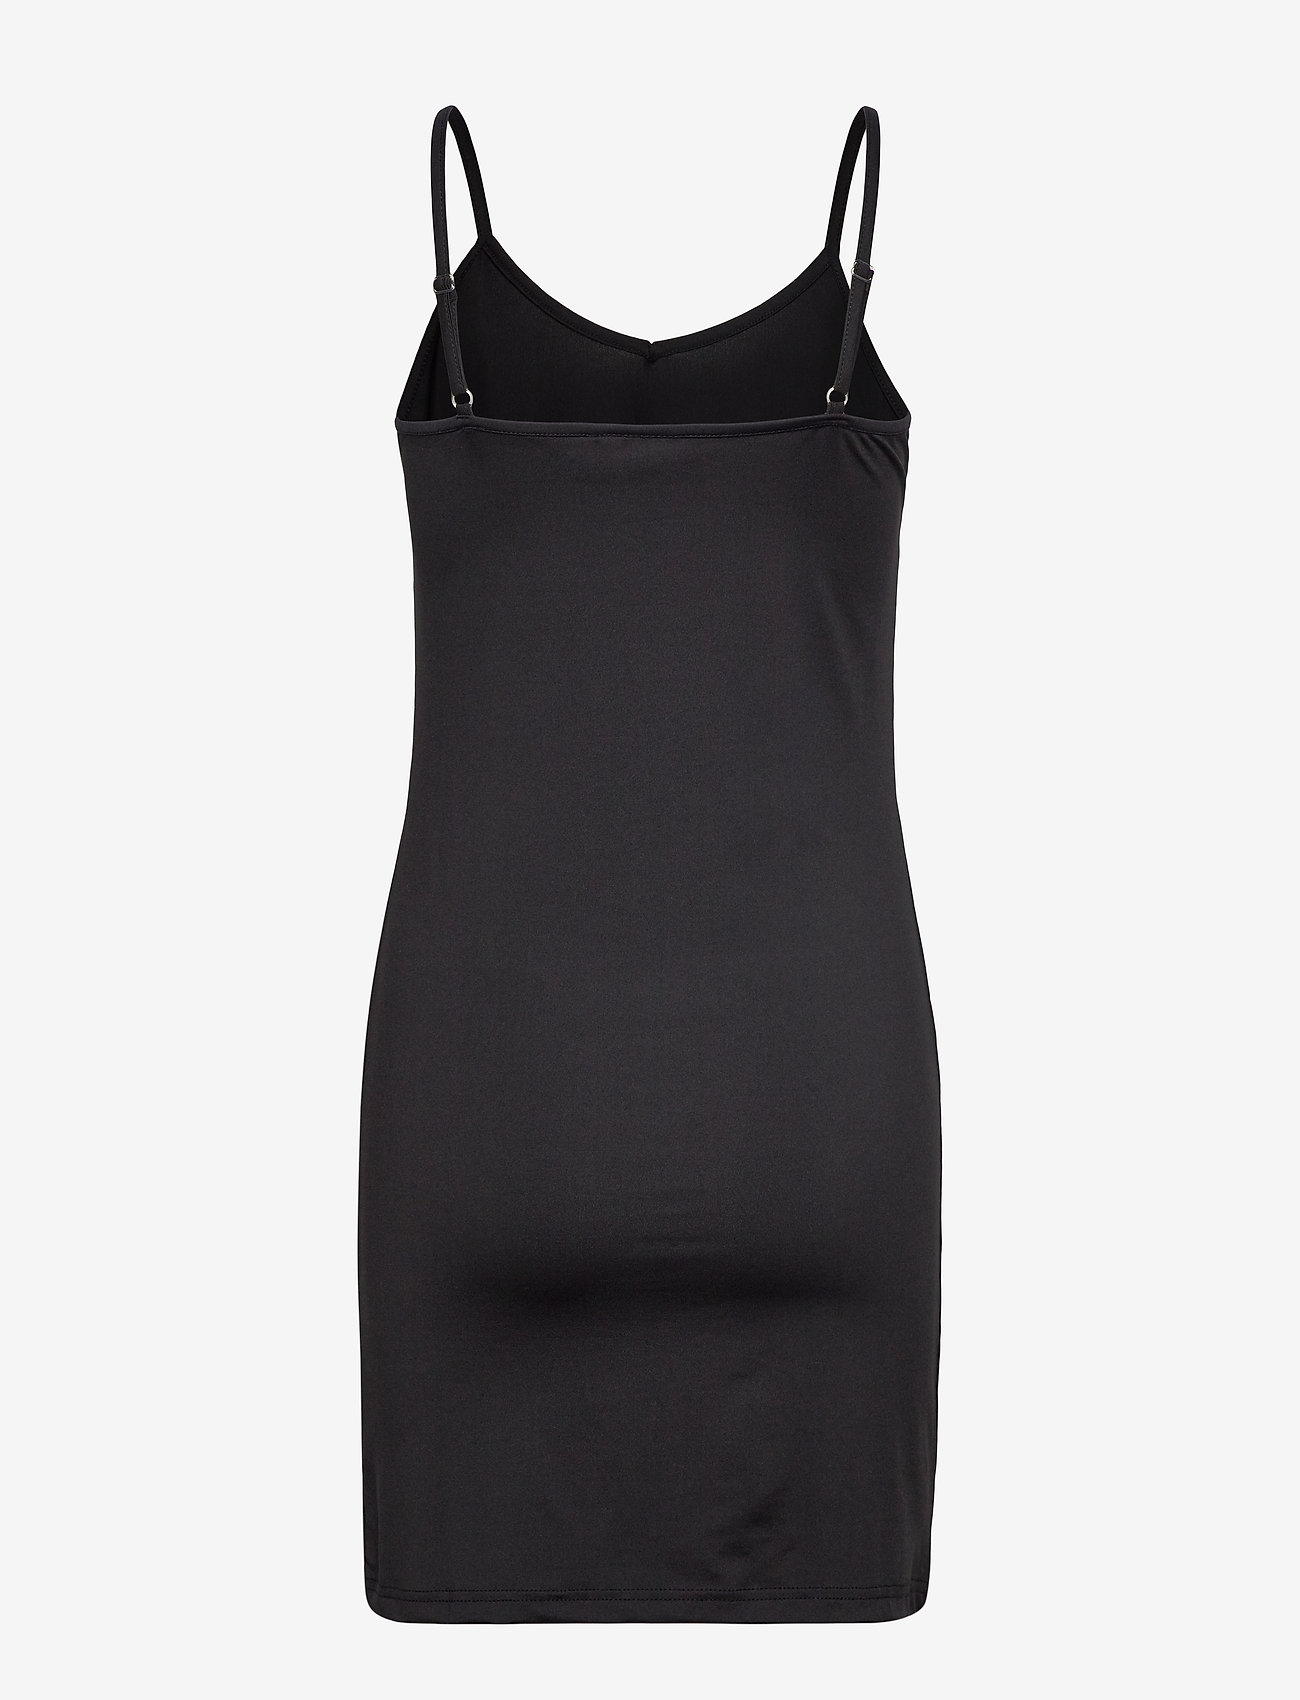 b.young - BYIANE UNDERDRESS - JERSEY - short dresses - black - 1